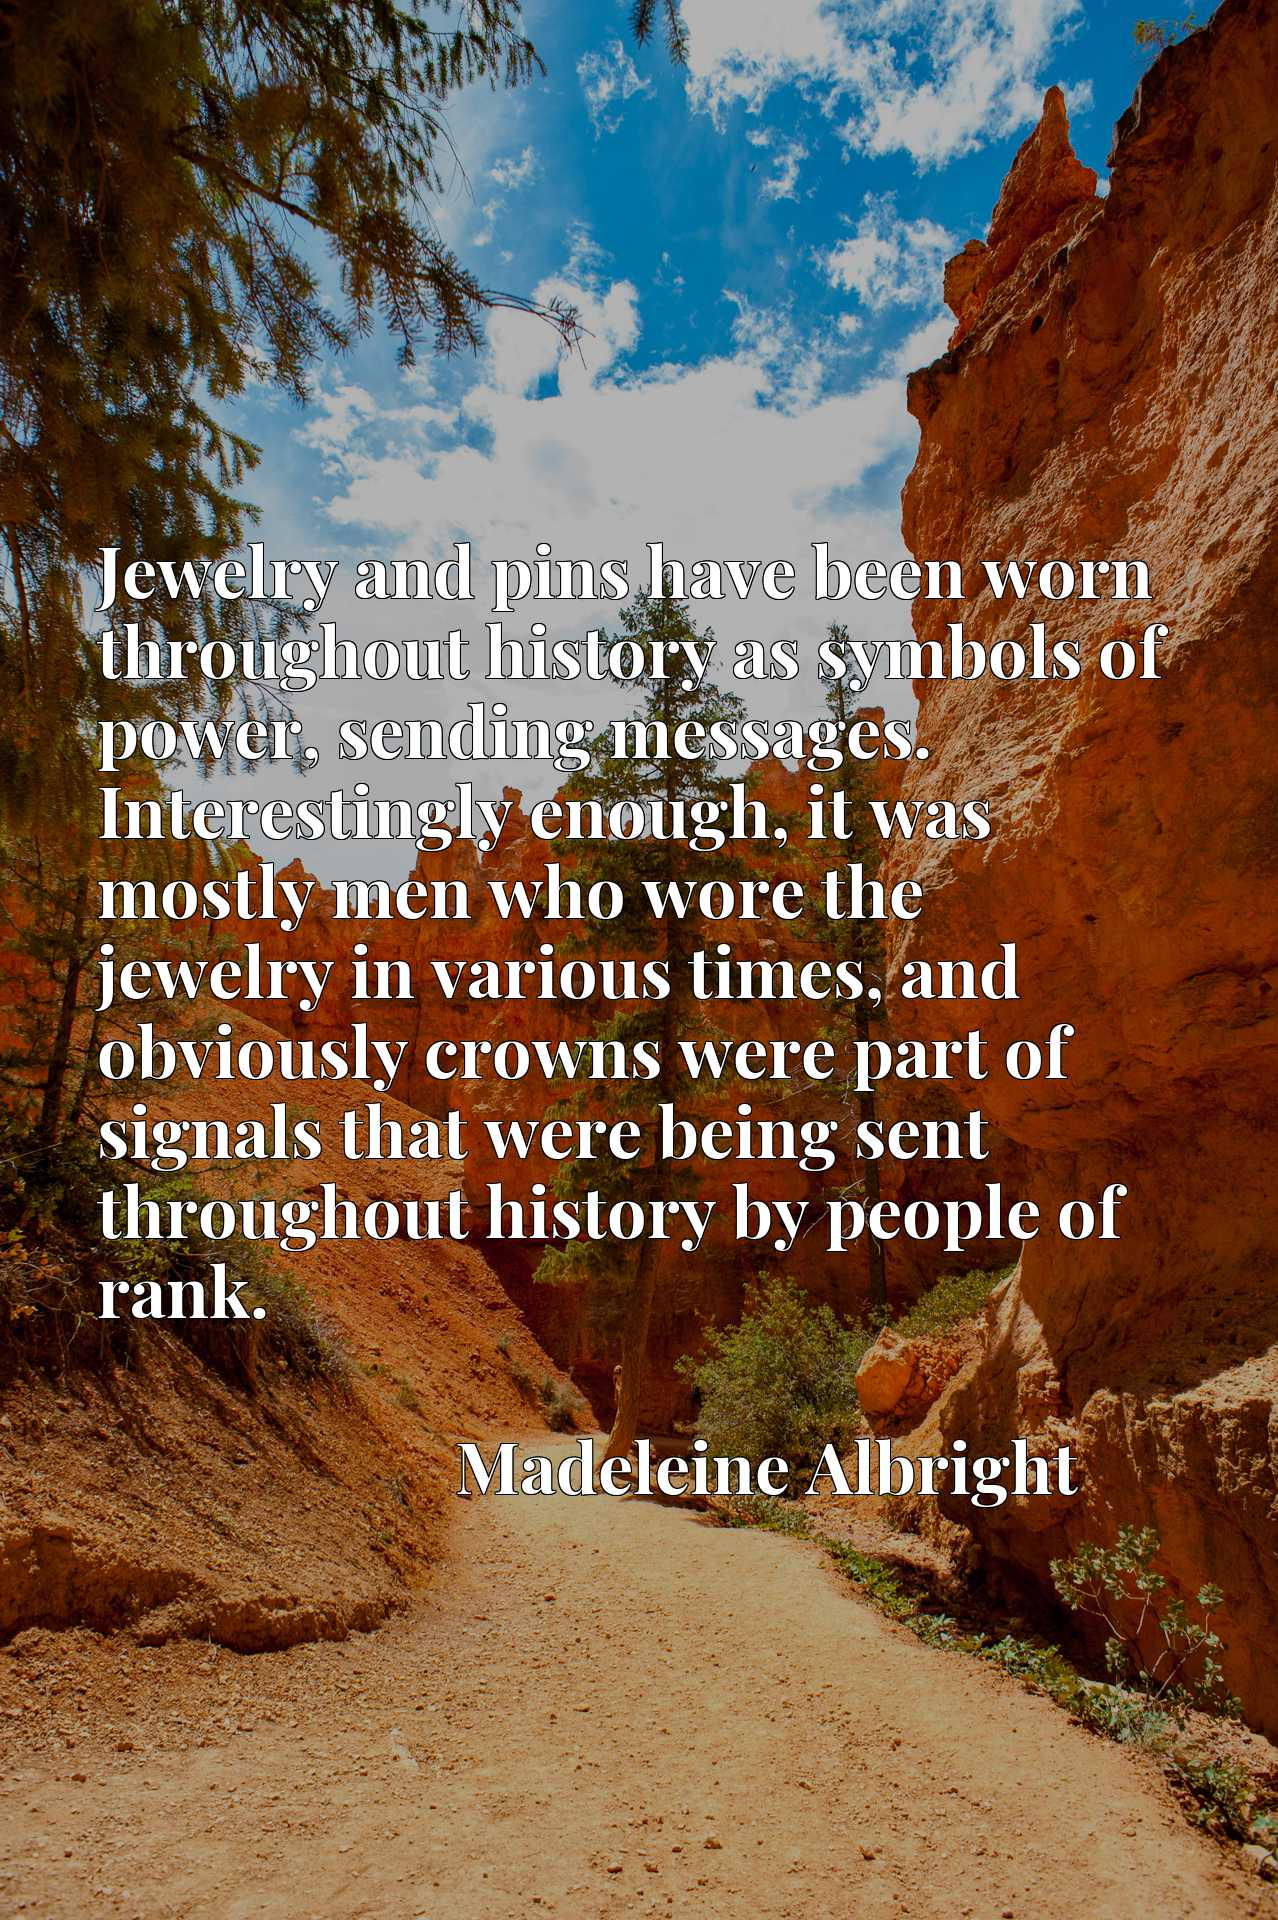 Jewelry and pins have been worn throughout history as symbols of power, sending messages. Interestingly enough, it was mostly men who wore the jewelry in various times, and obviously crowns were part of signals that were being sent throughout history by people of rank.